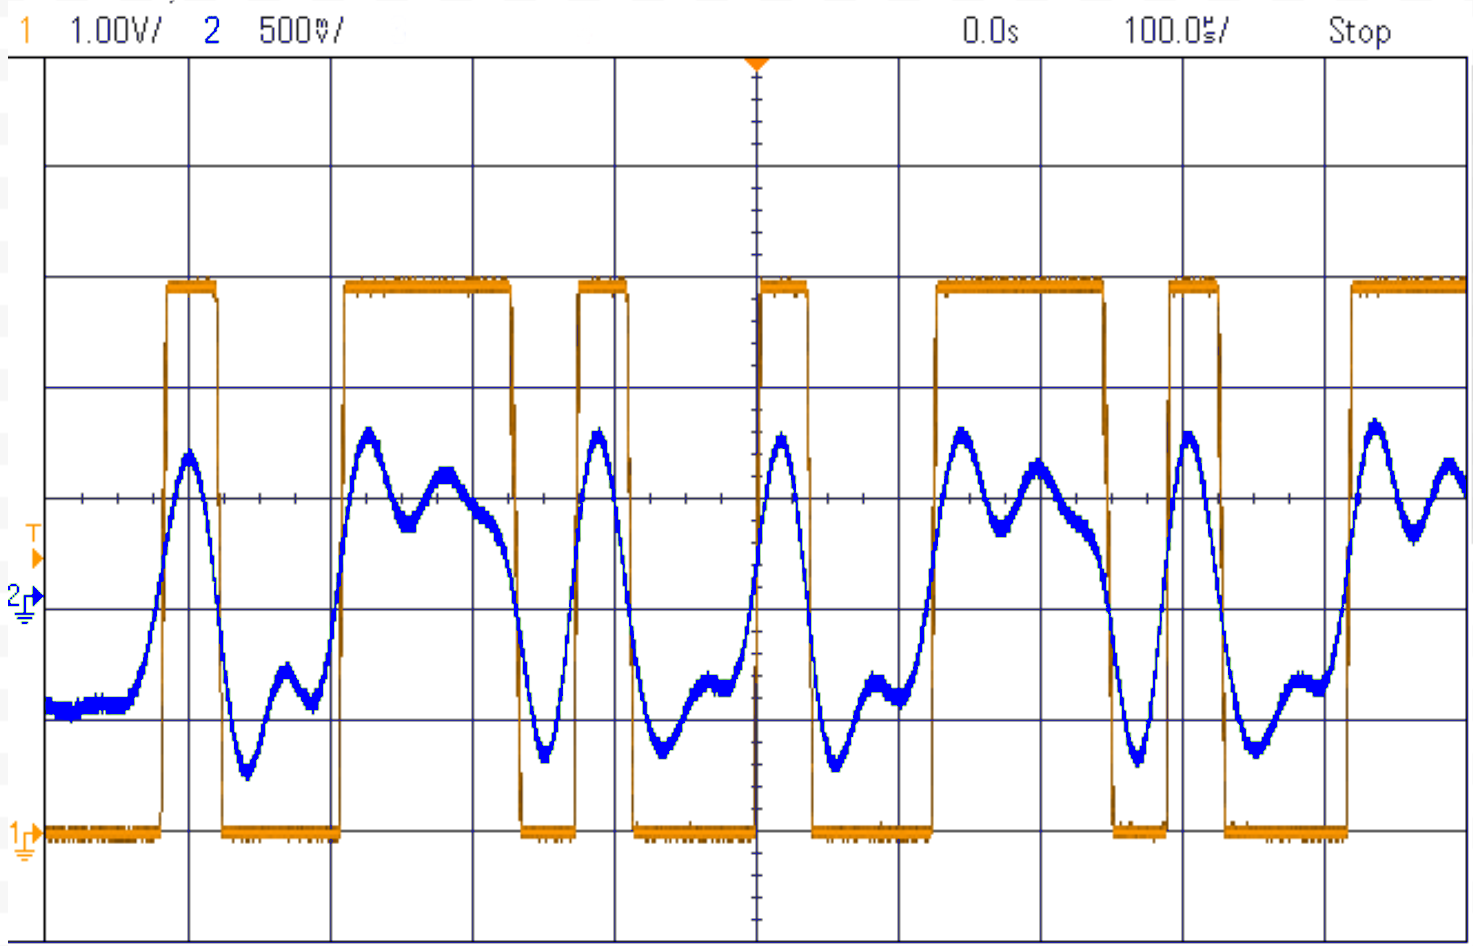 Serial Communication Via Audio On Android Op Amp Comparator Circuits With An We Can Design A Circuit That Will Output 0v When The Signal Is Negative And 5v Positive